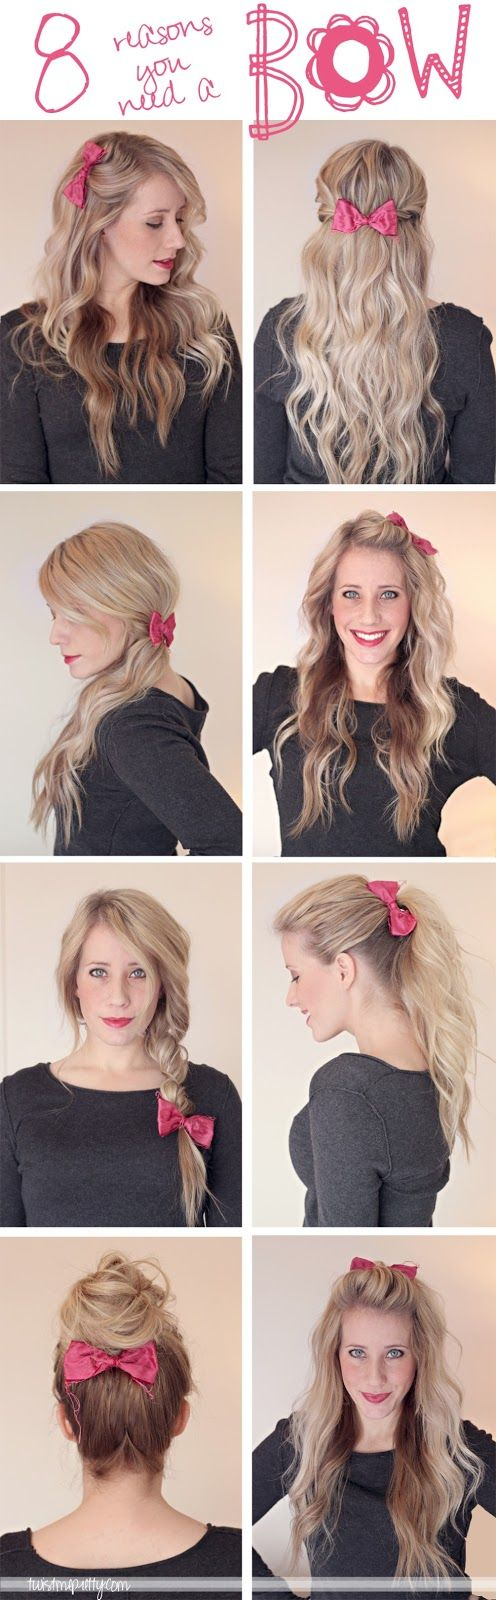 Finally! Hairstyles that work with bows. :)